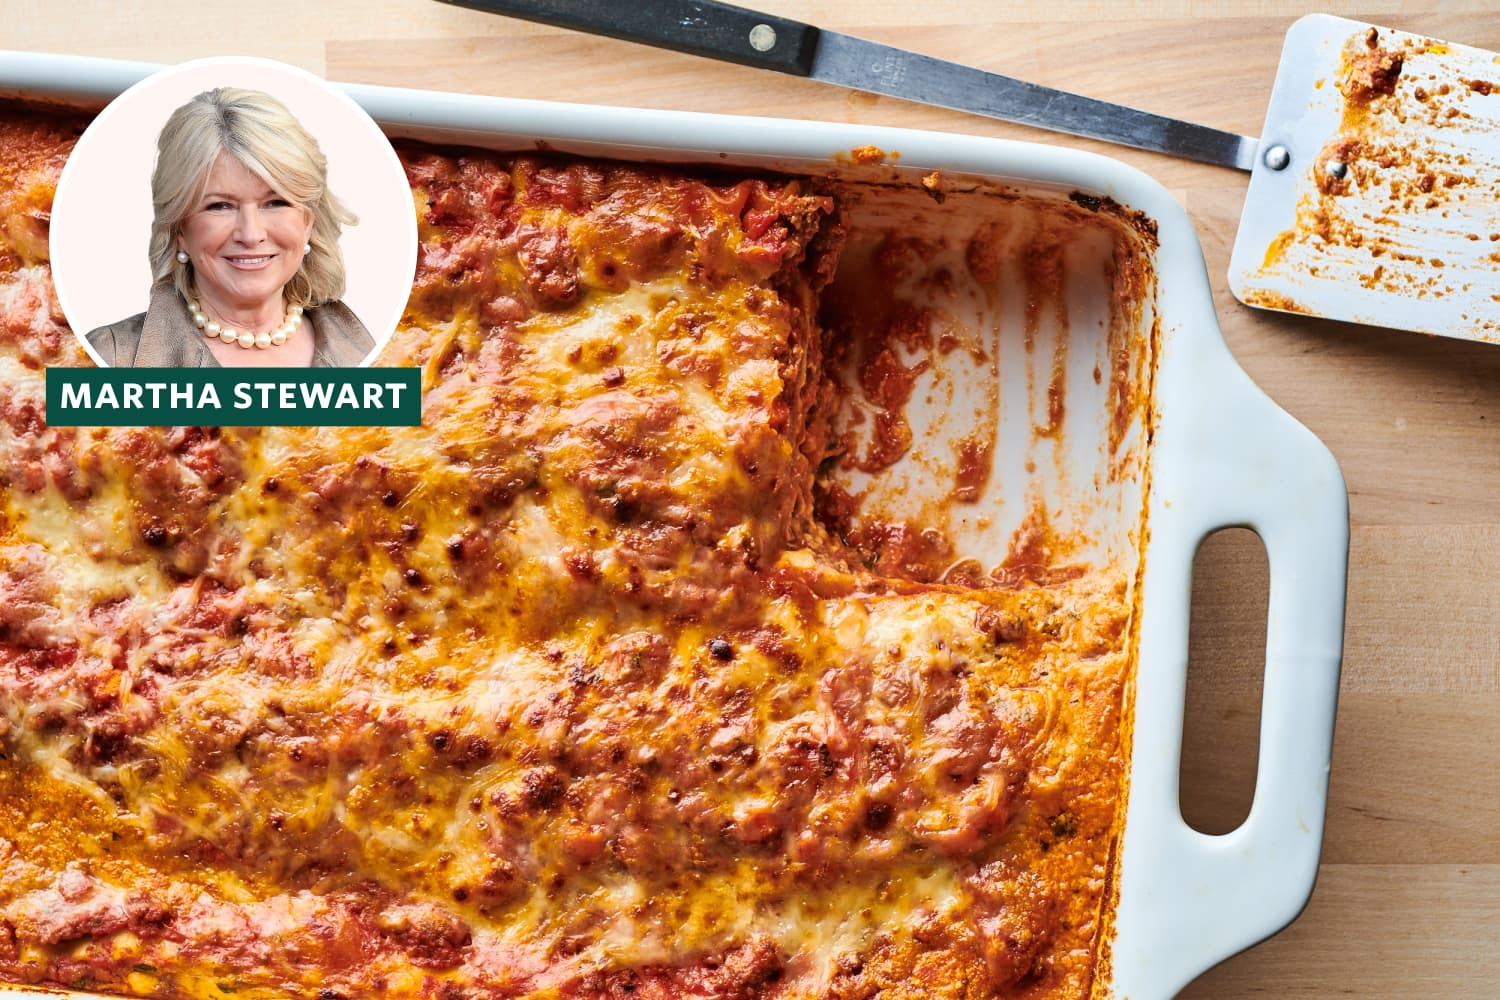 Martha Stewart's Lasagna Features a Brilliant Time-Saving Trick